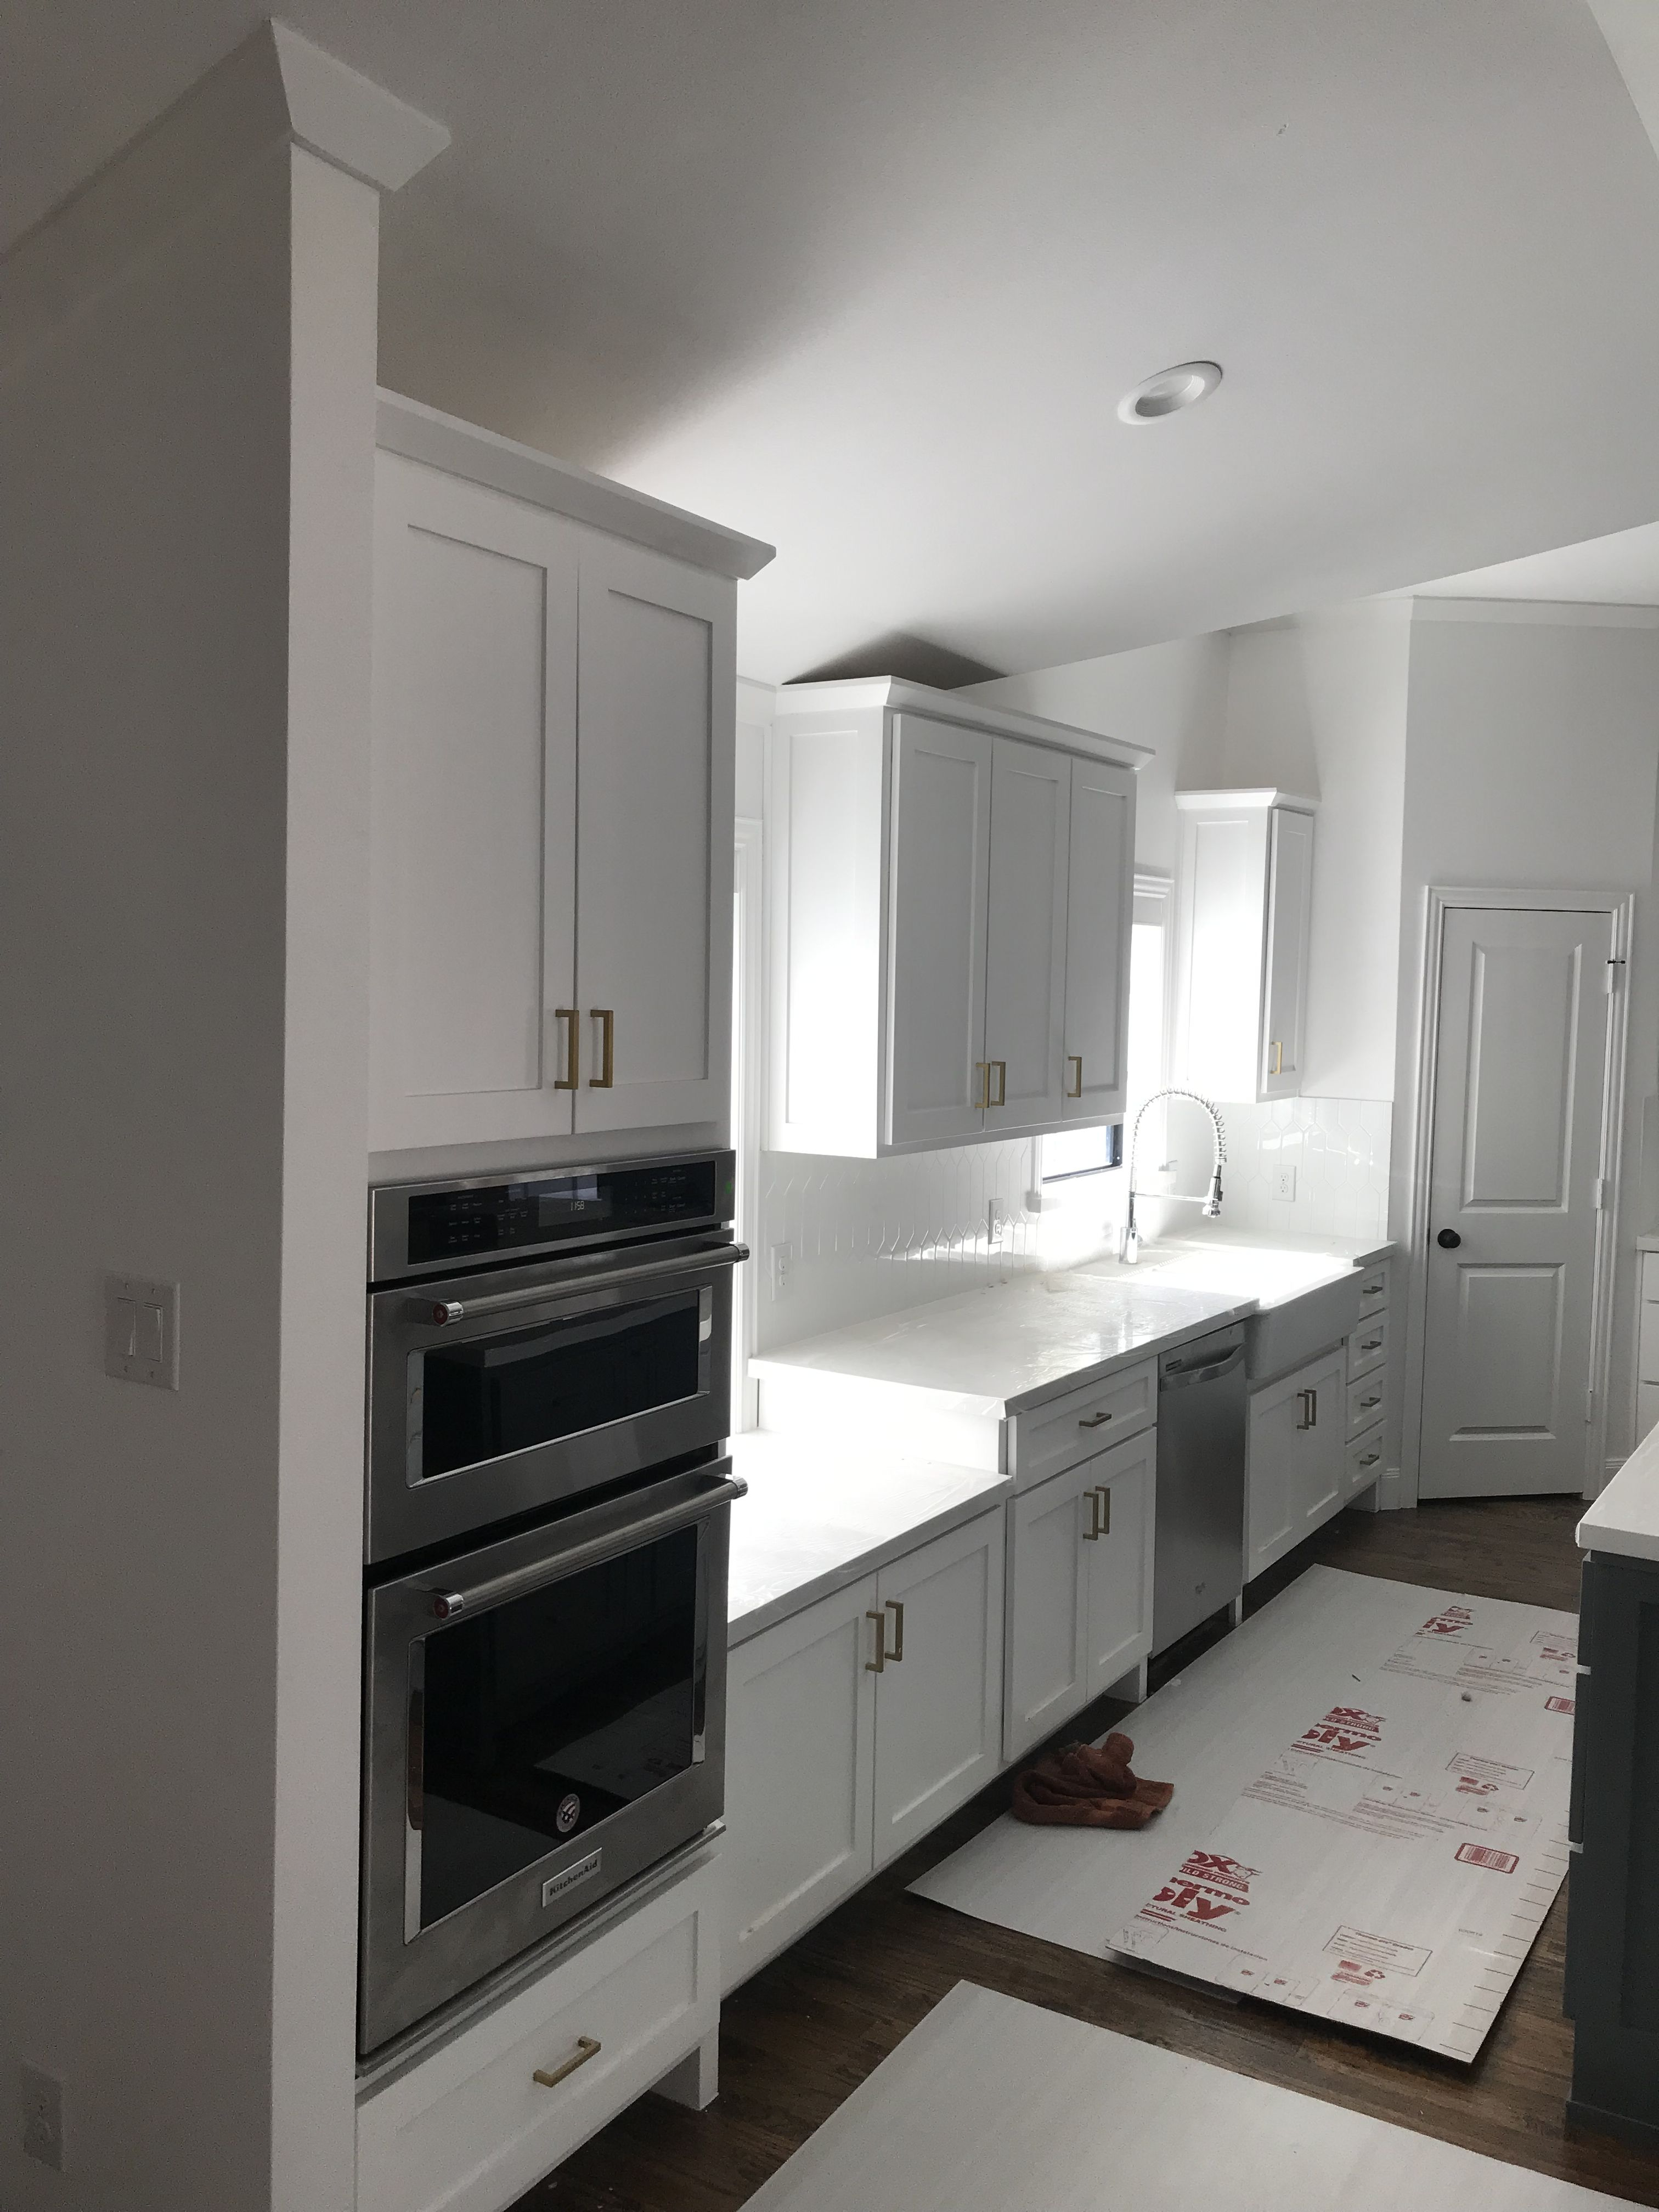 Pin By Reds Cabinets On Custom Cabinets In 2020 Custom Cabinets Kitchen Home Decor